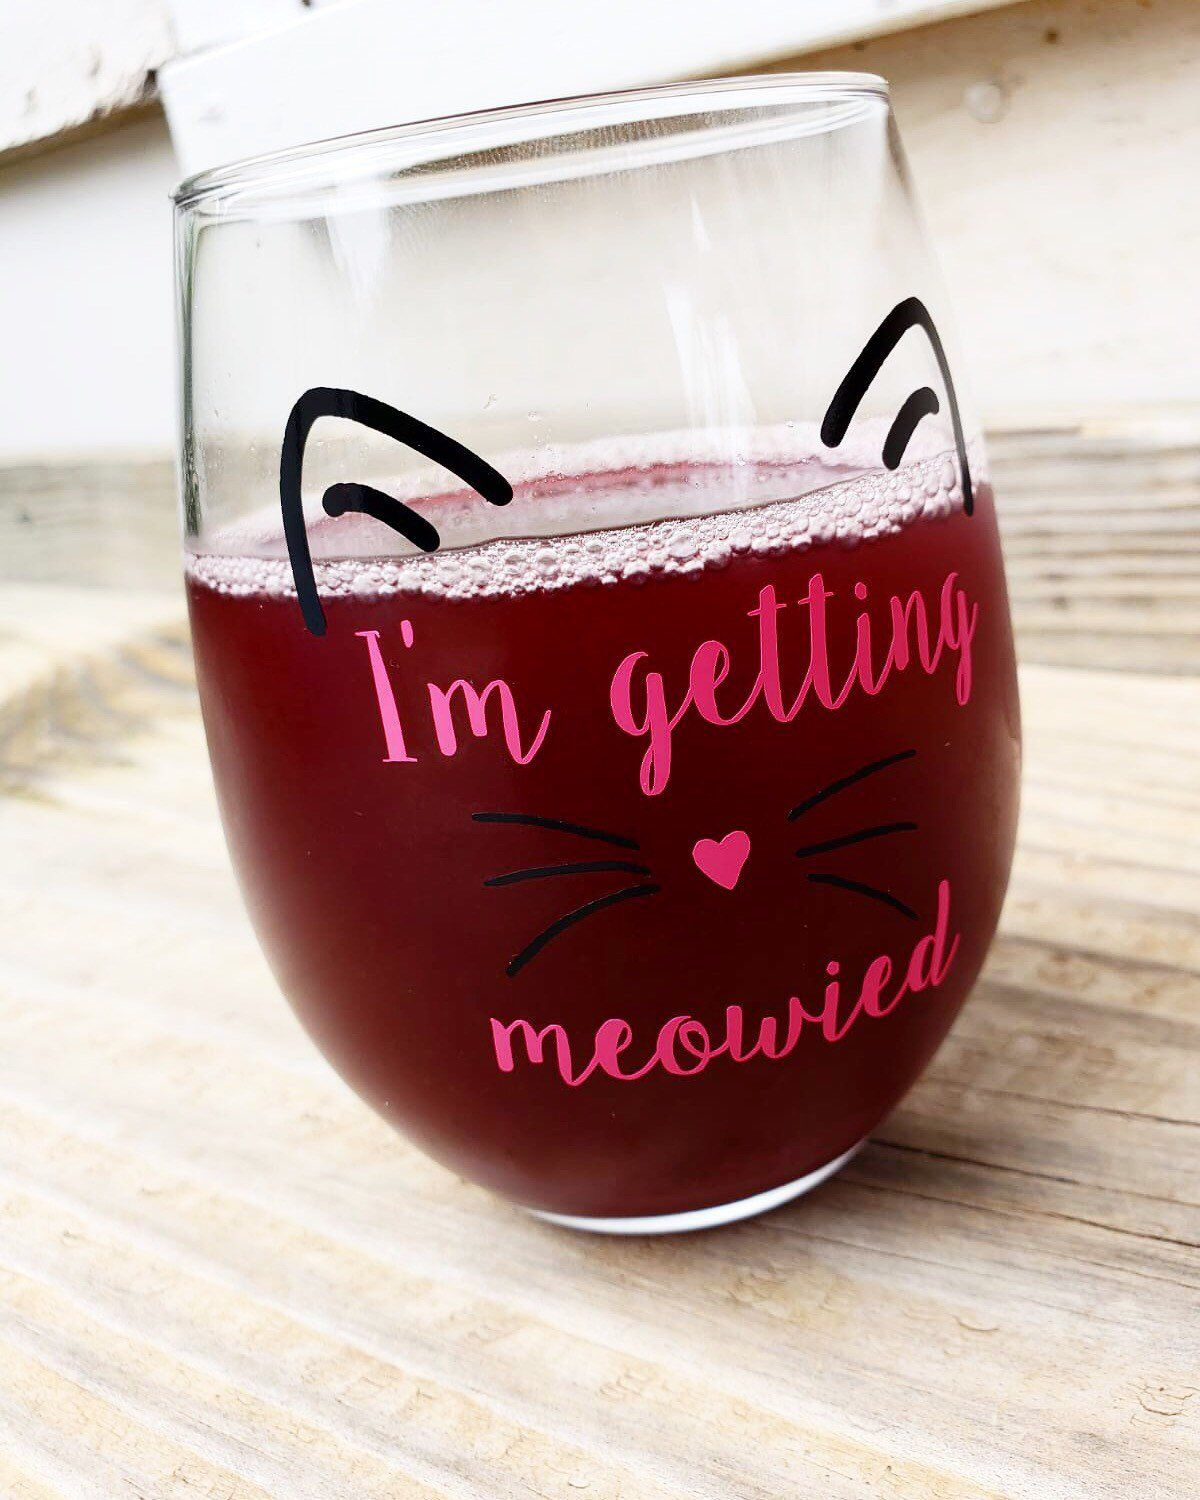 I M Getting Meowied Engagement Gift Future Mrs Wedding Etsy Wedding Planning Glass Engagement Gifts Engagement Gifts For Bride